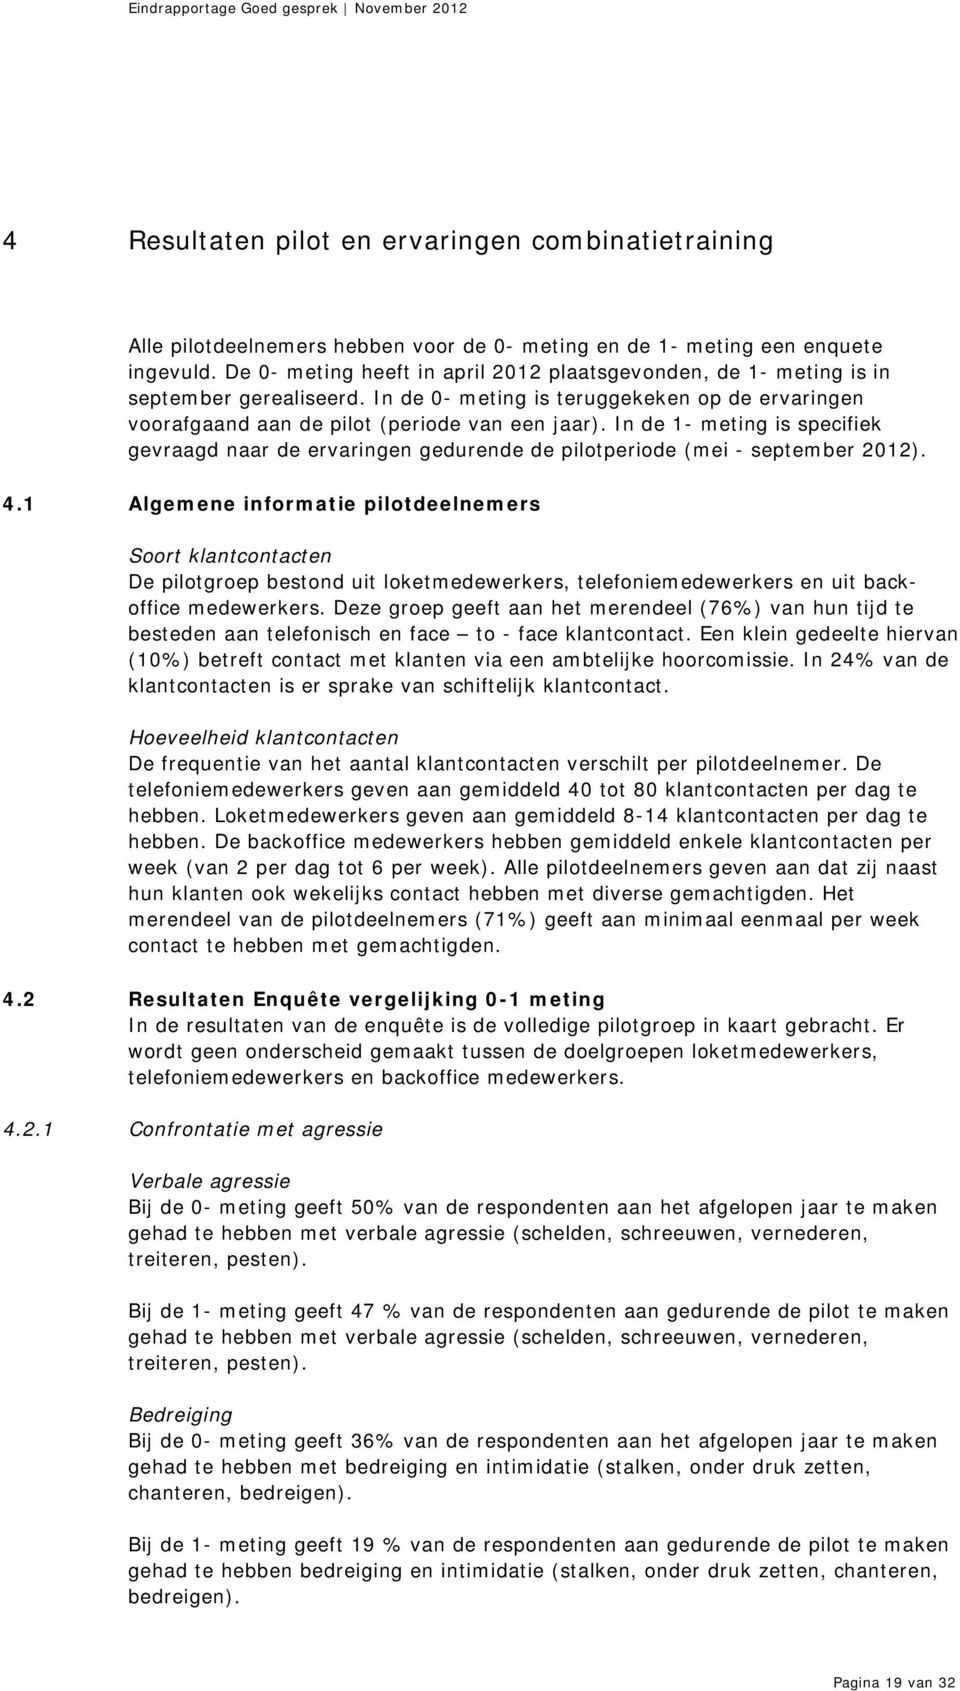 In de 1- meting is specifiek gevraagd naar de ervaringen gedurende de pilotperiode (mei - september 2012). 4.